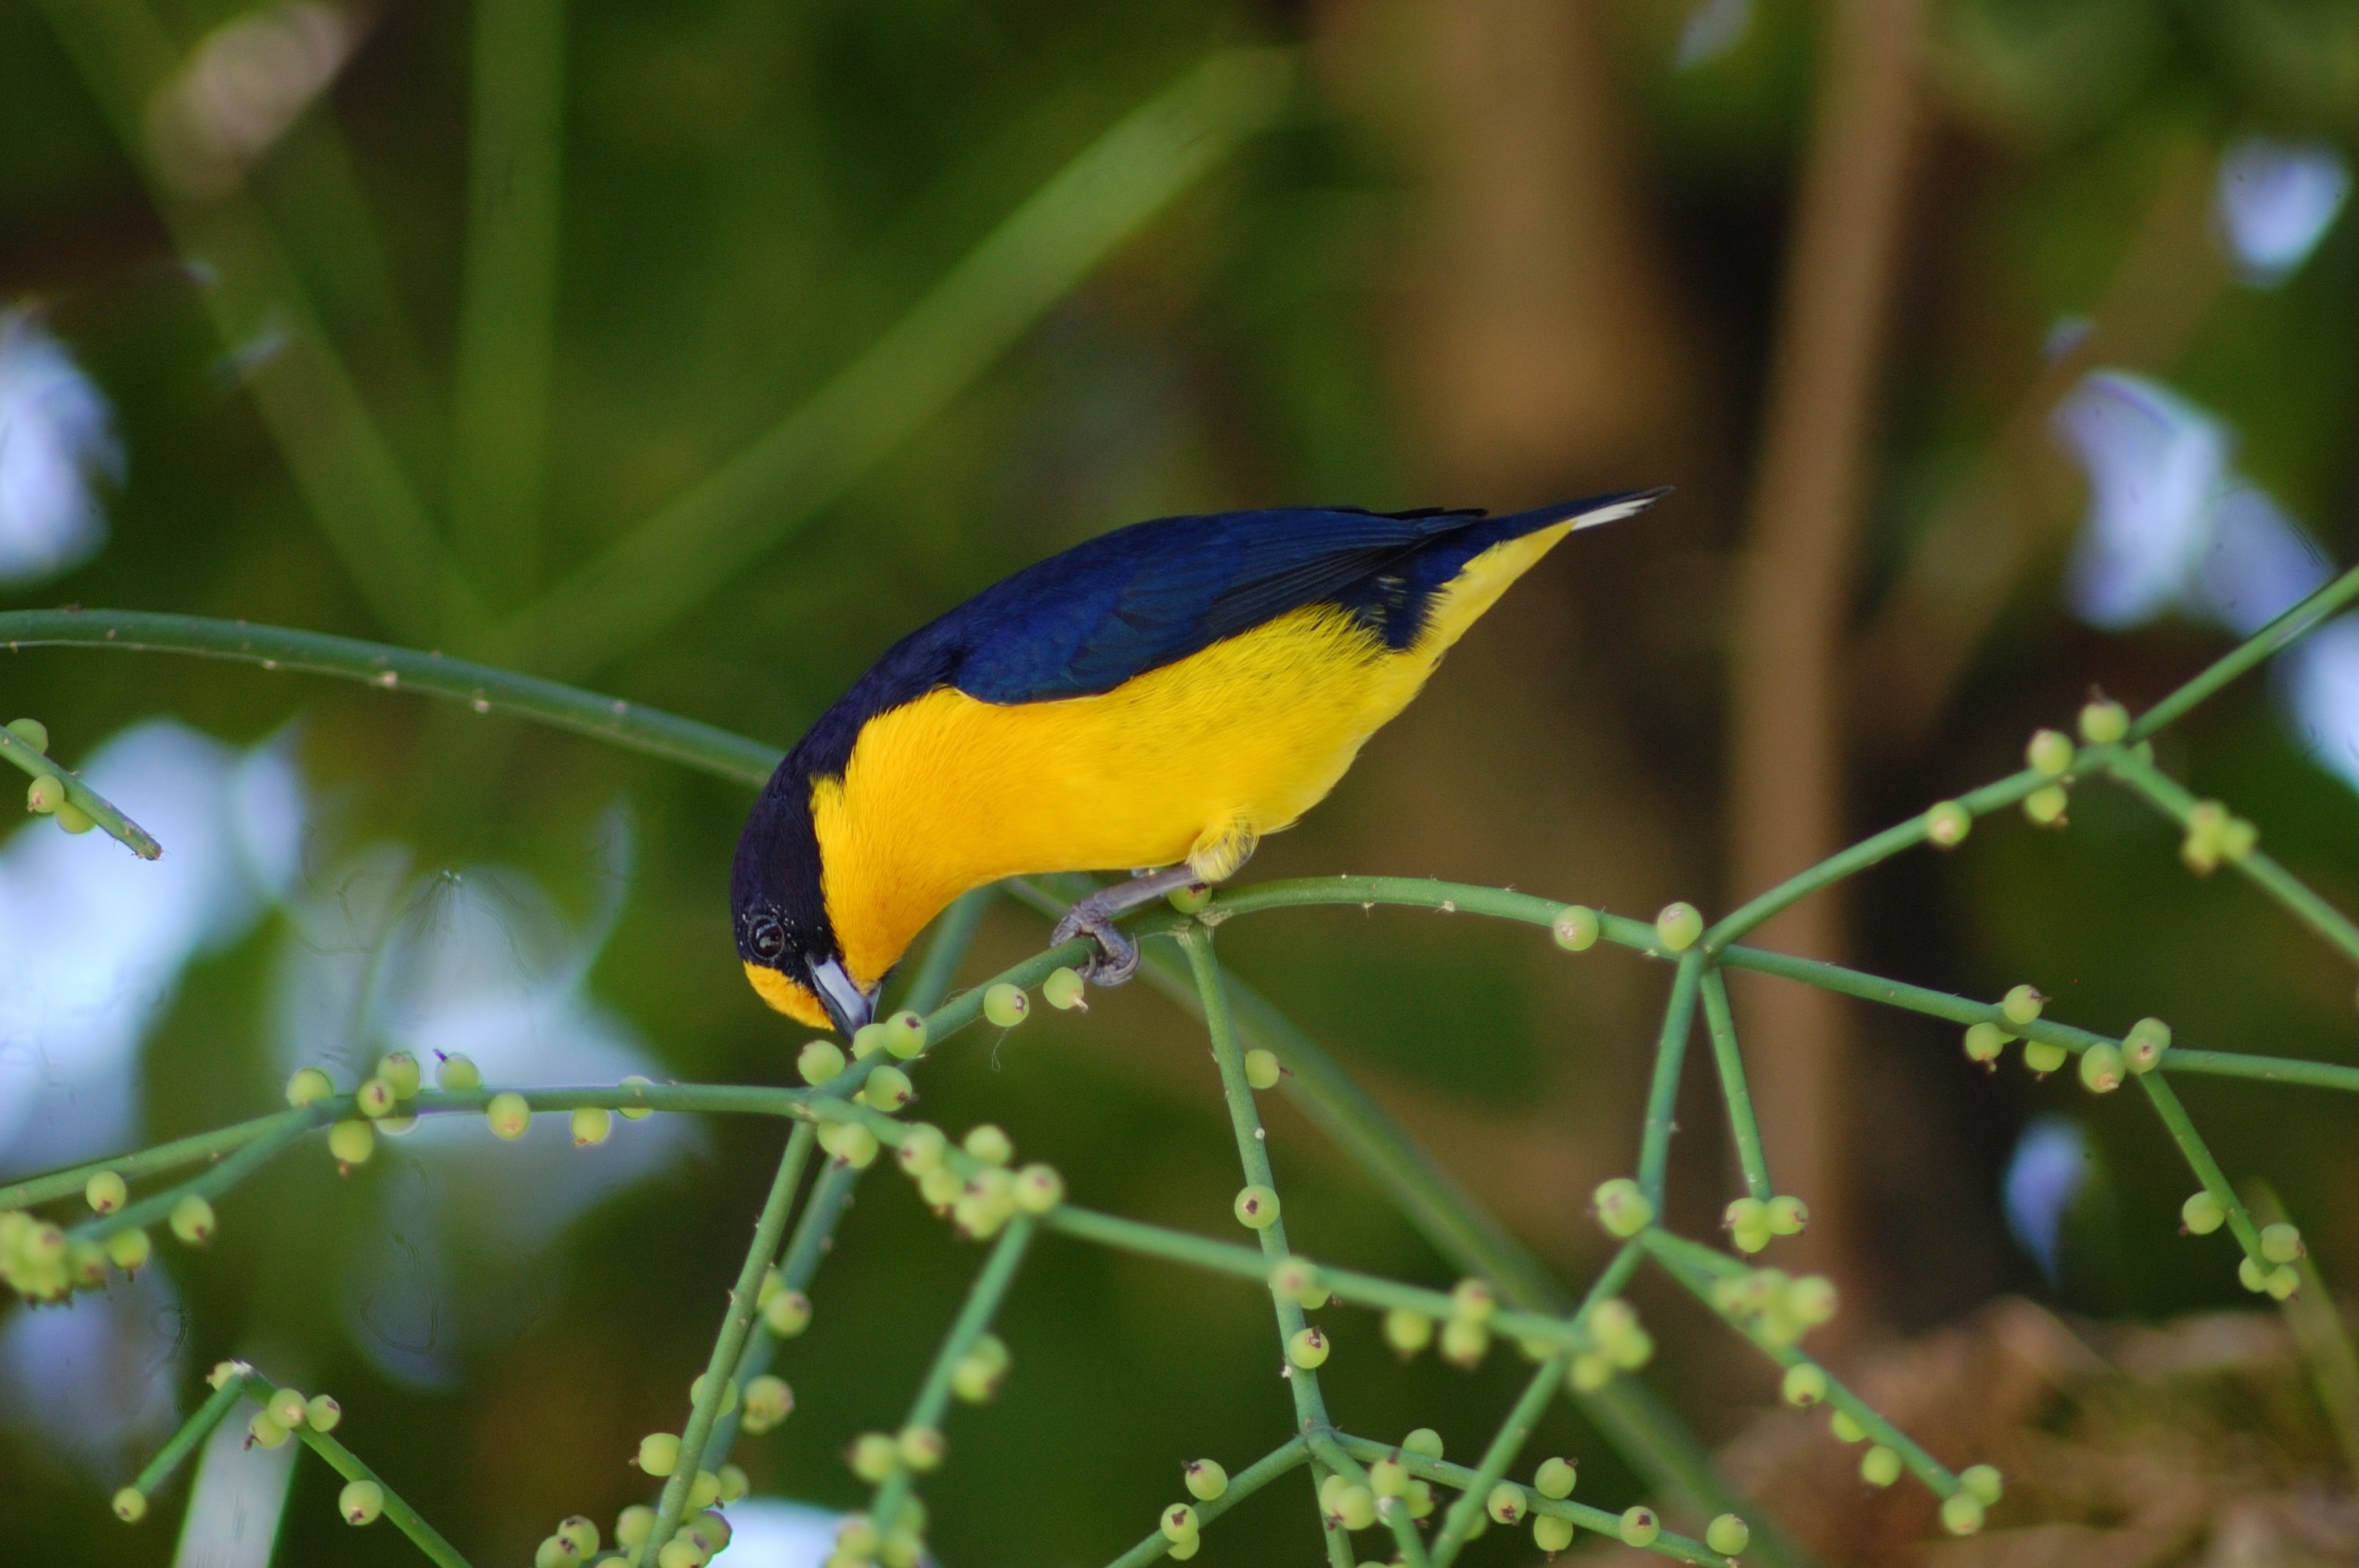 close-up photo of yellow and blue bird